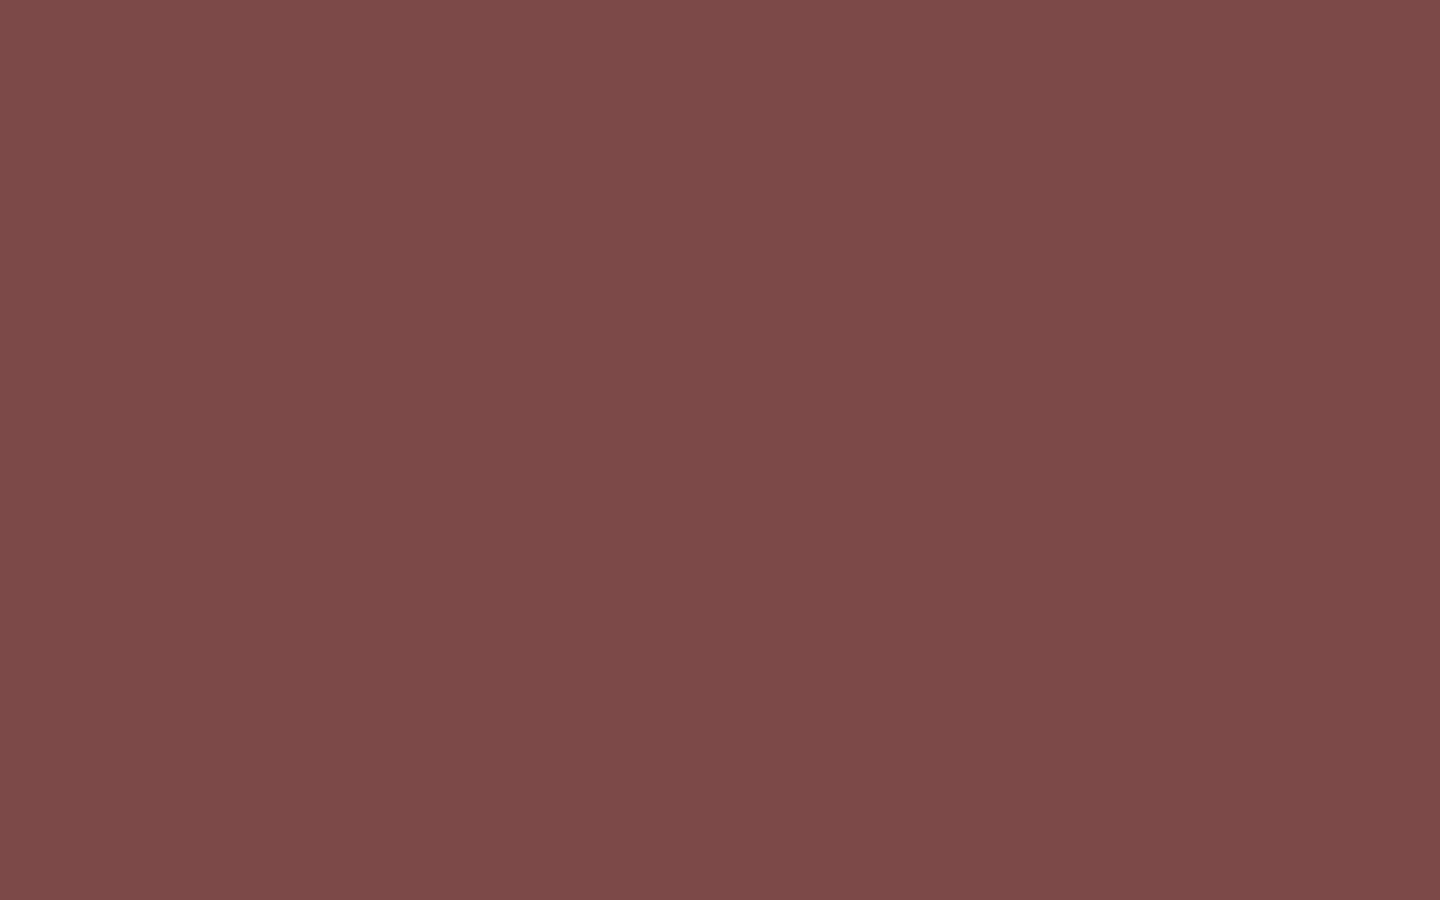 1440x900 Tuscan Red Solid Color Background